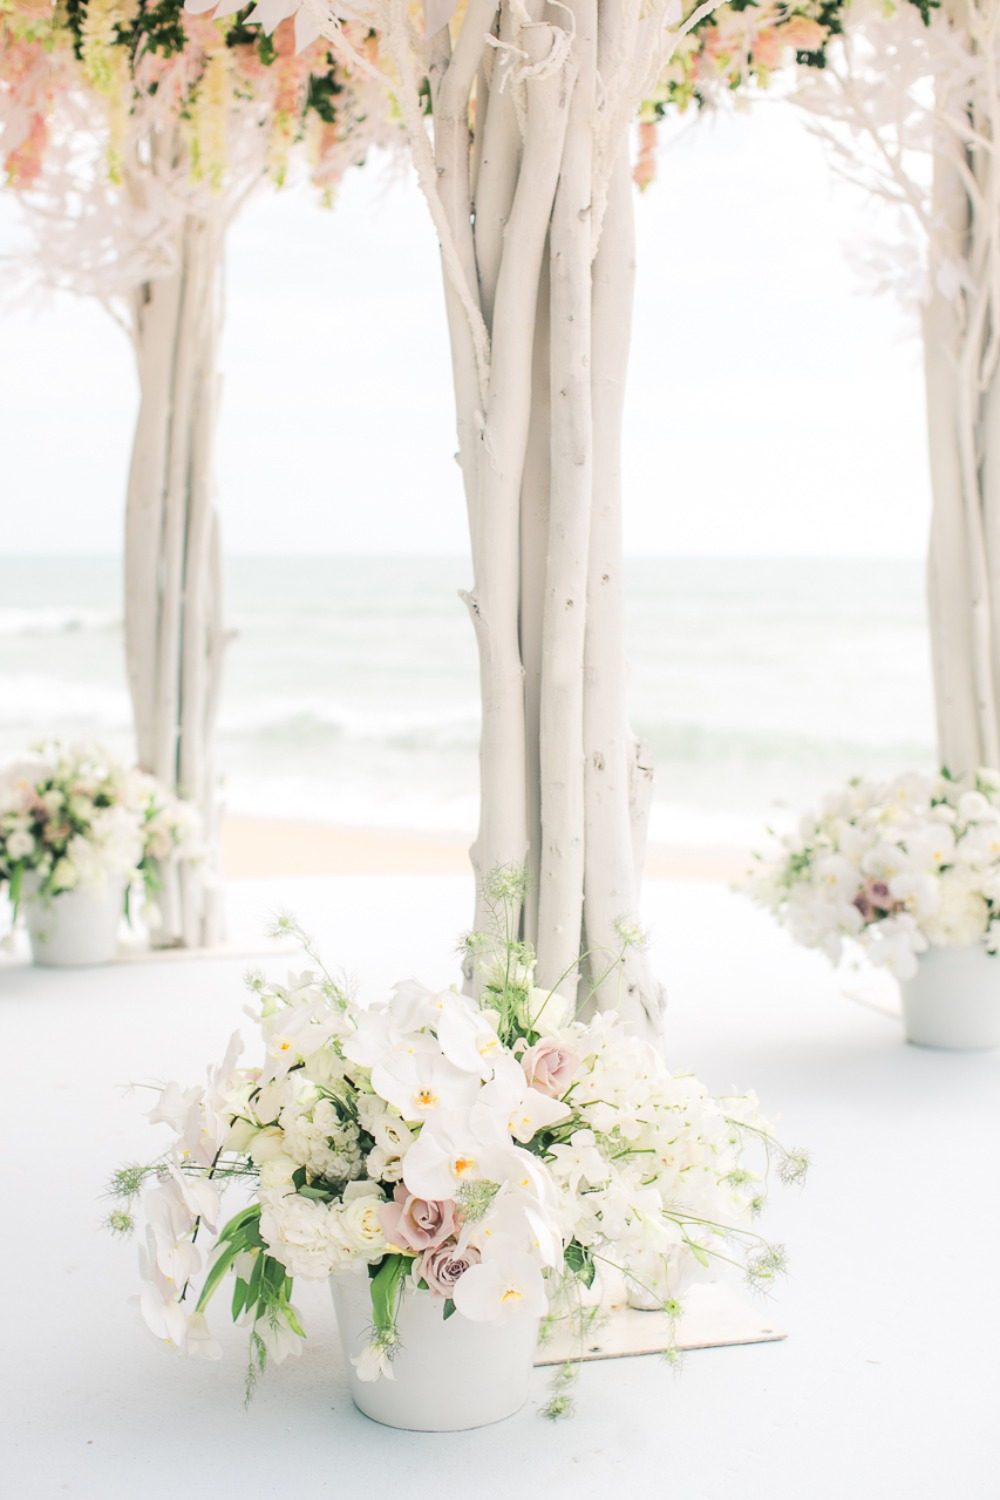 Ceremony florals for a beach wedding